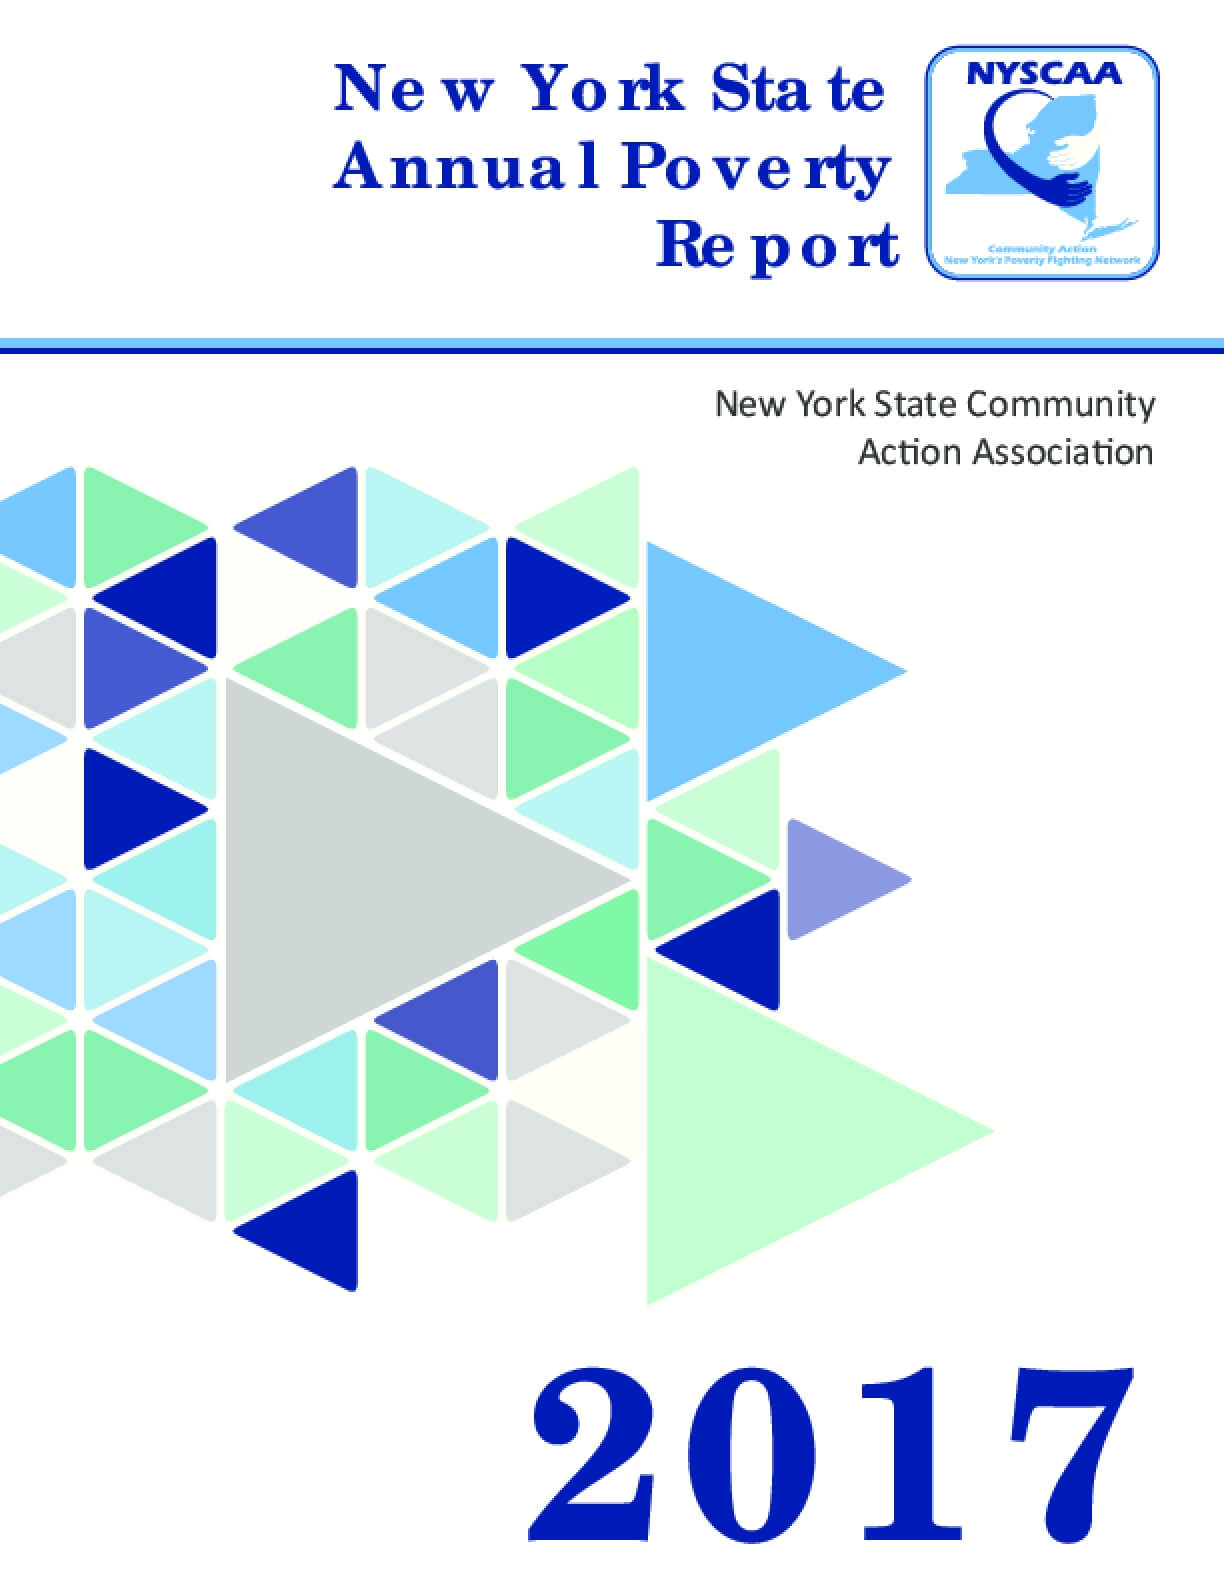 New York State Annual Poverty Report 2017